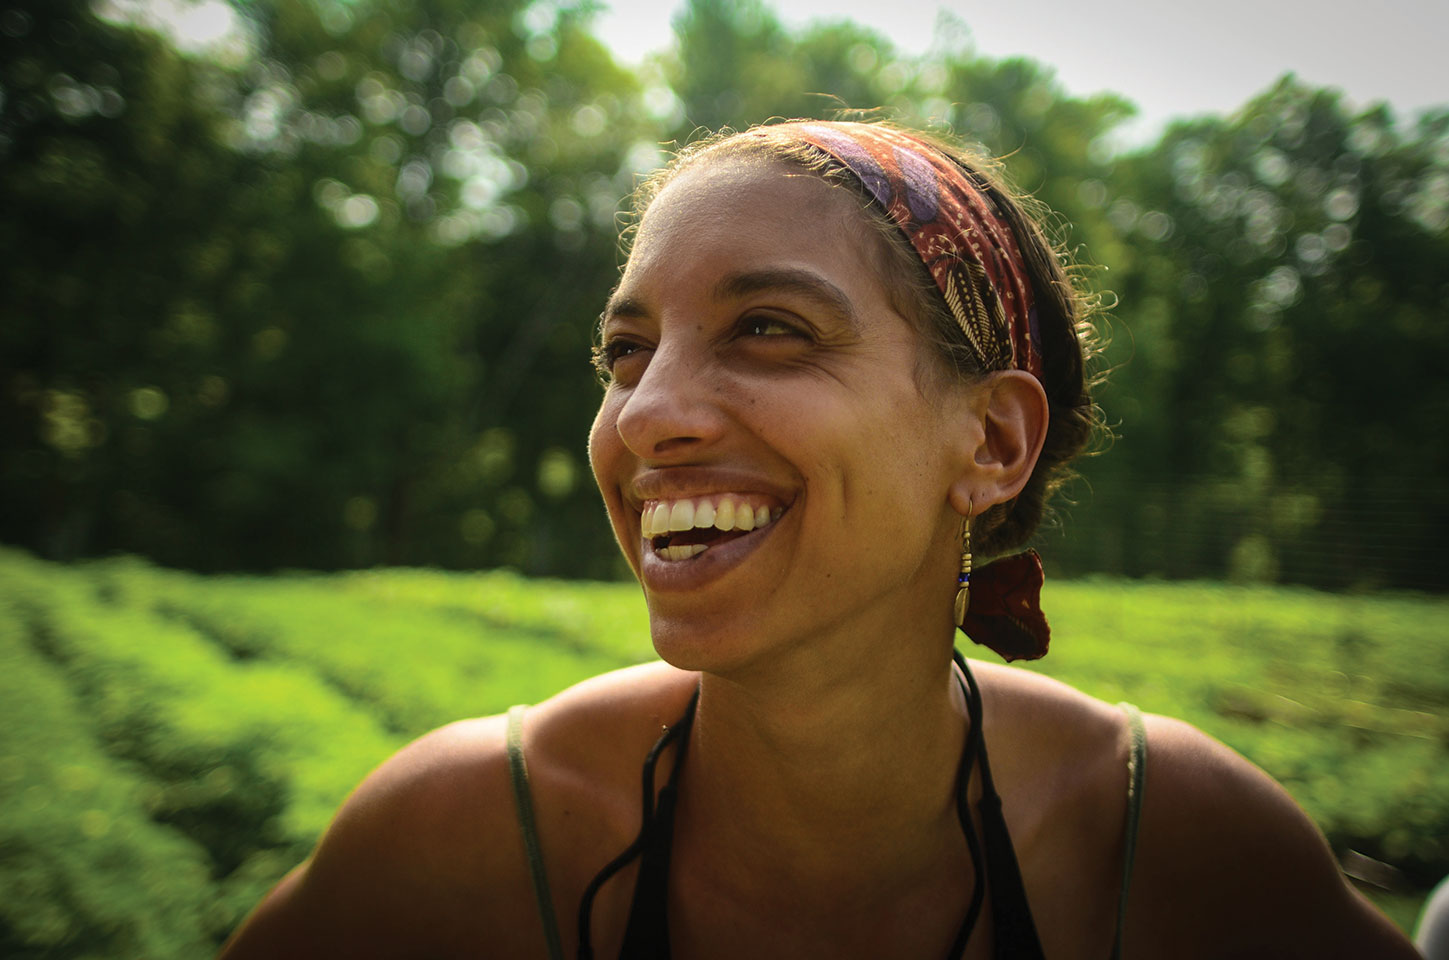 Farming While Black: How One Woman Is Improving Access to Healthy Food for Black Families